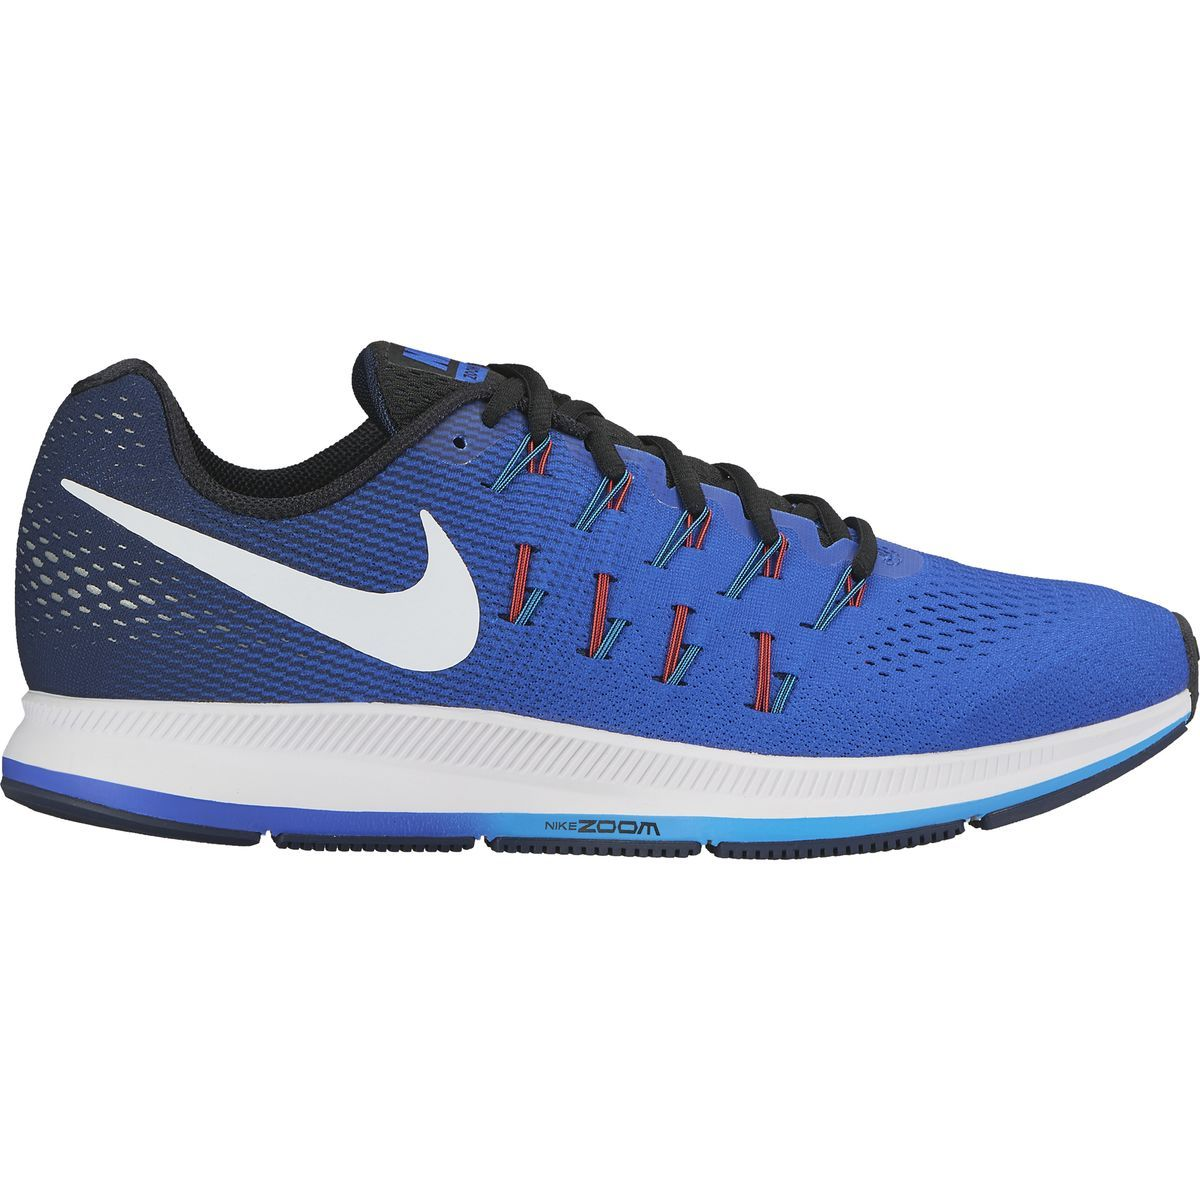 Nike Air Zoom Pegasus 33 Running Shoe Racer Blue/Midnight Navy/Blue  GloWhite 11.5